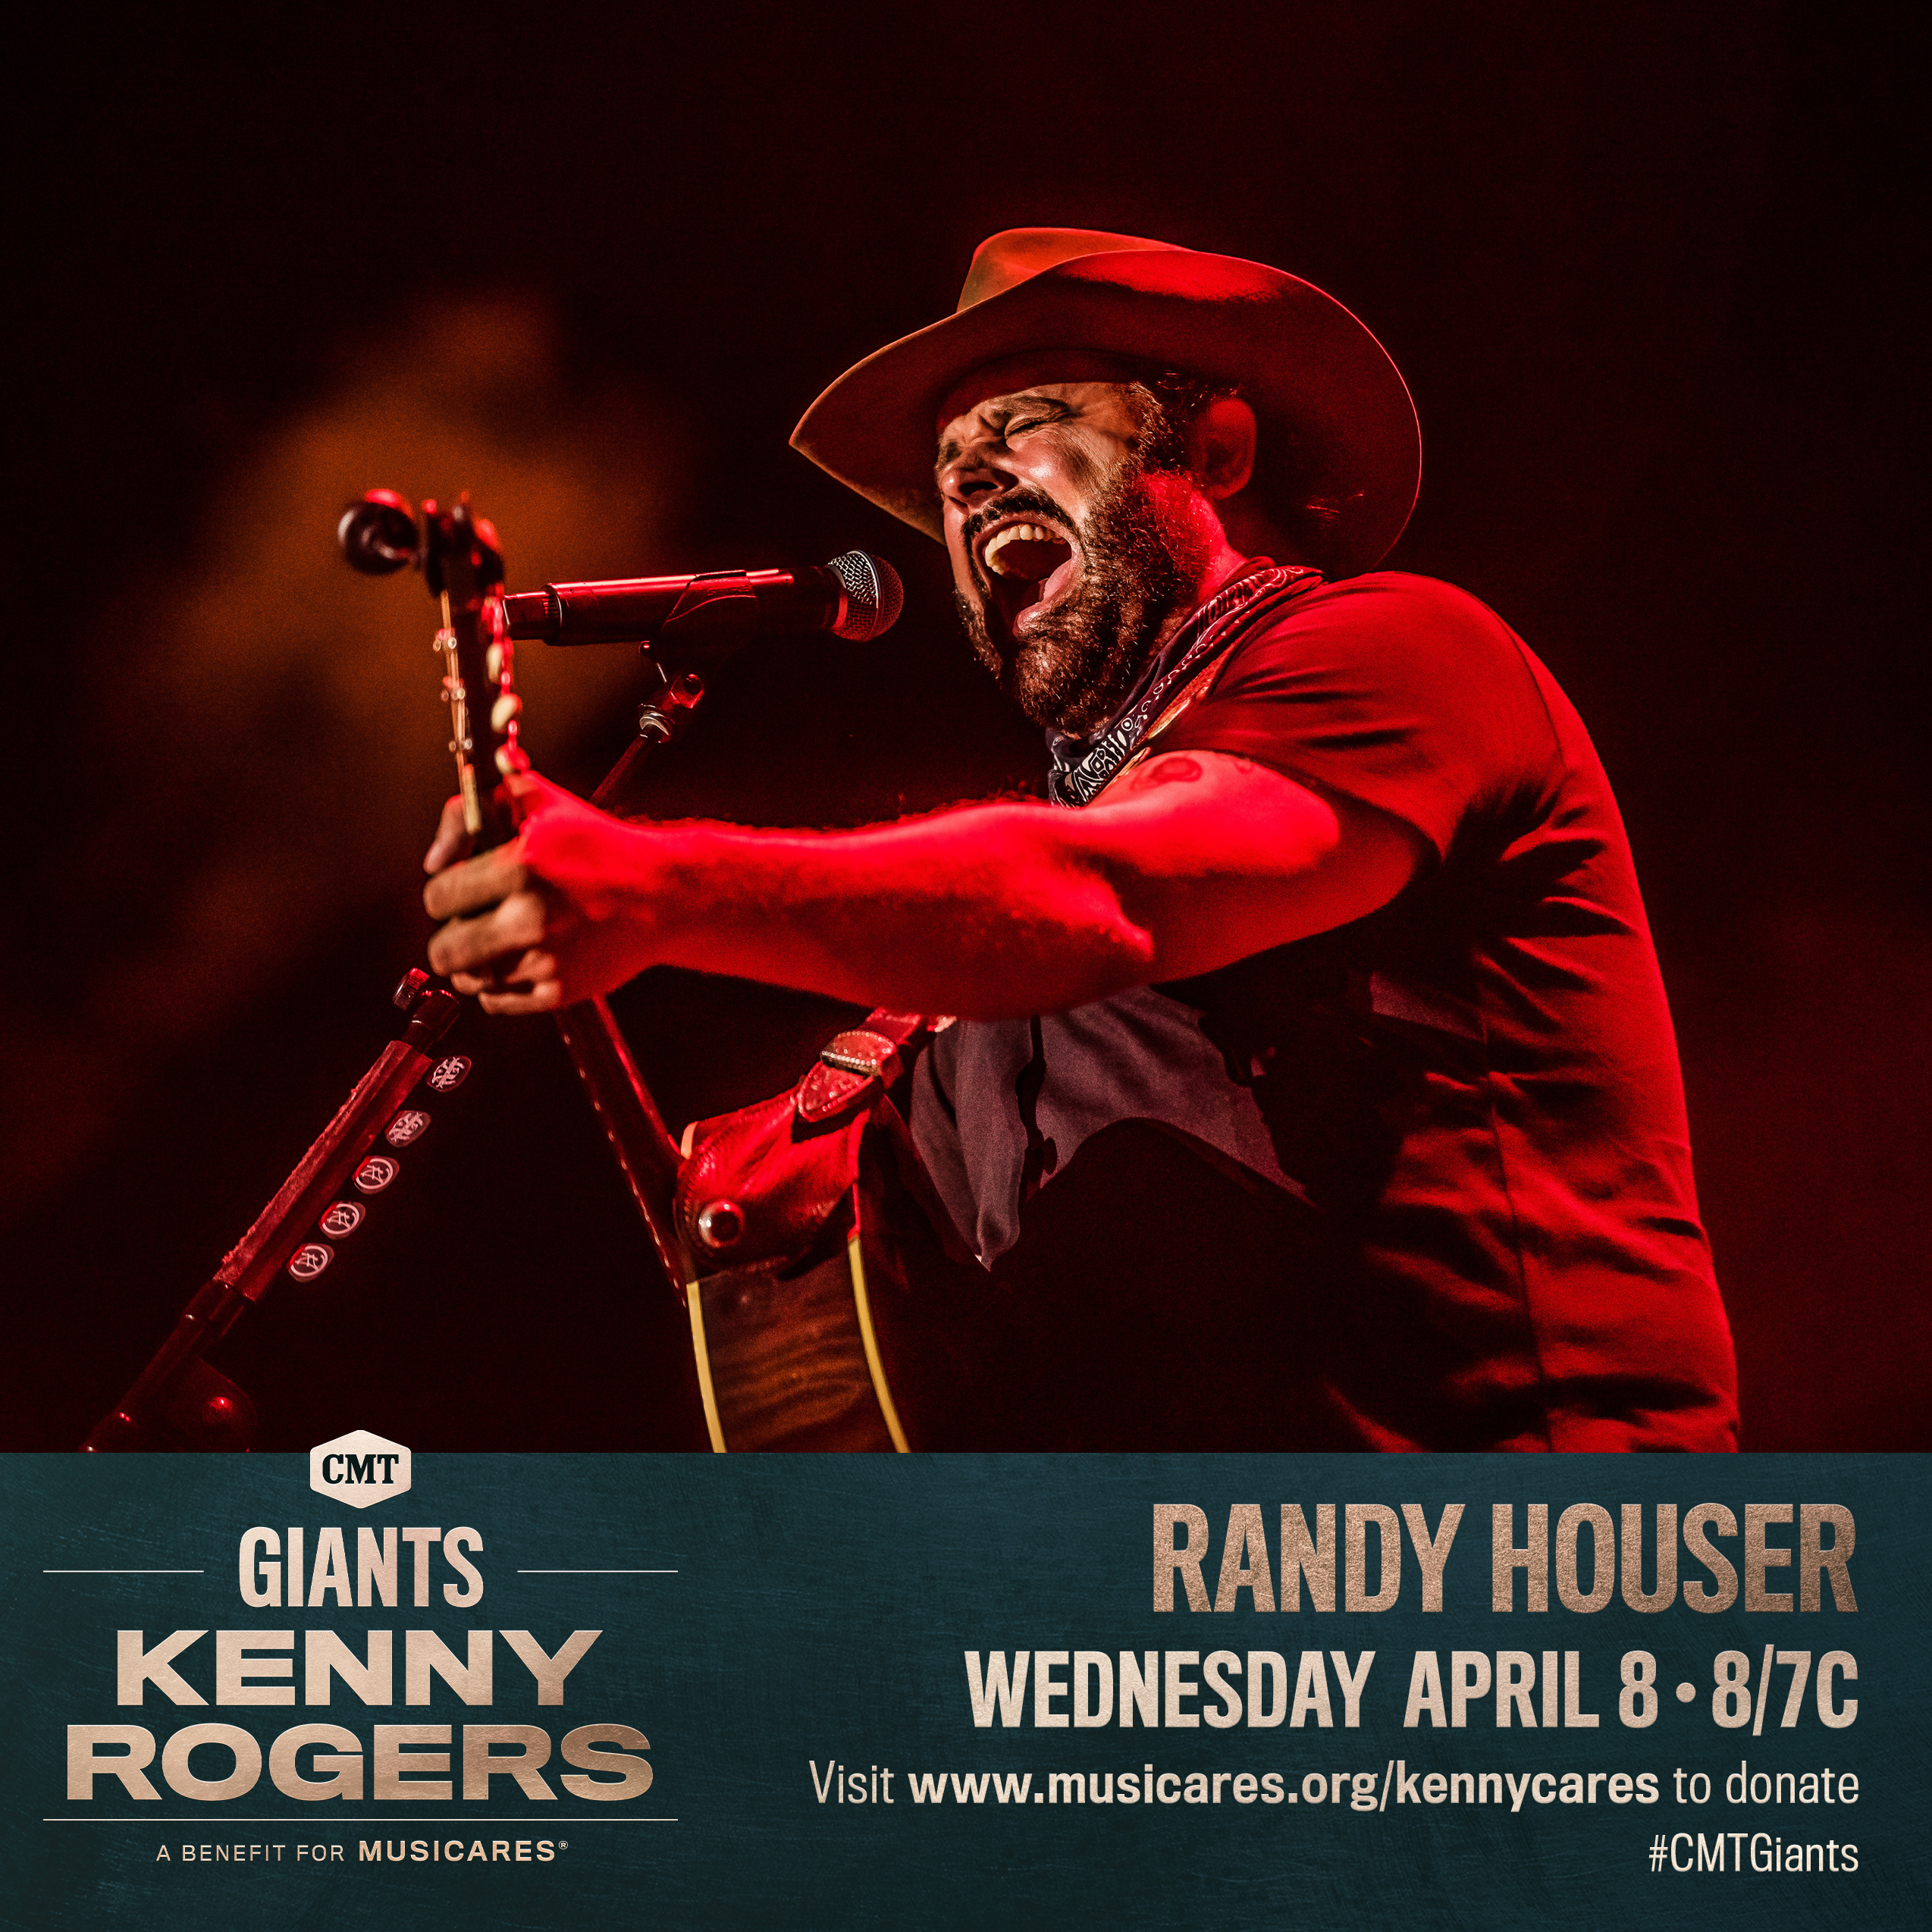 RANDY TO PERFORM ON CMT SPECIAL HONORING KENNY ROGERS